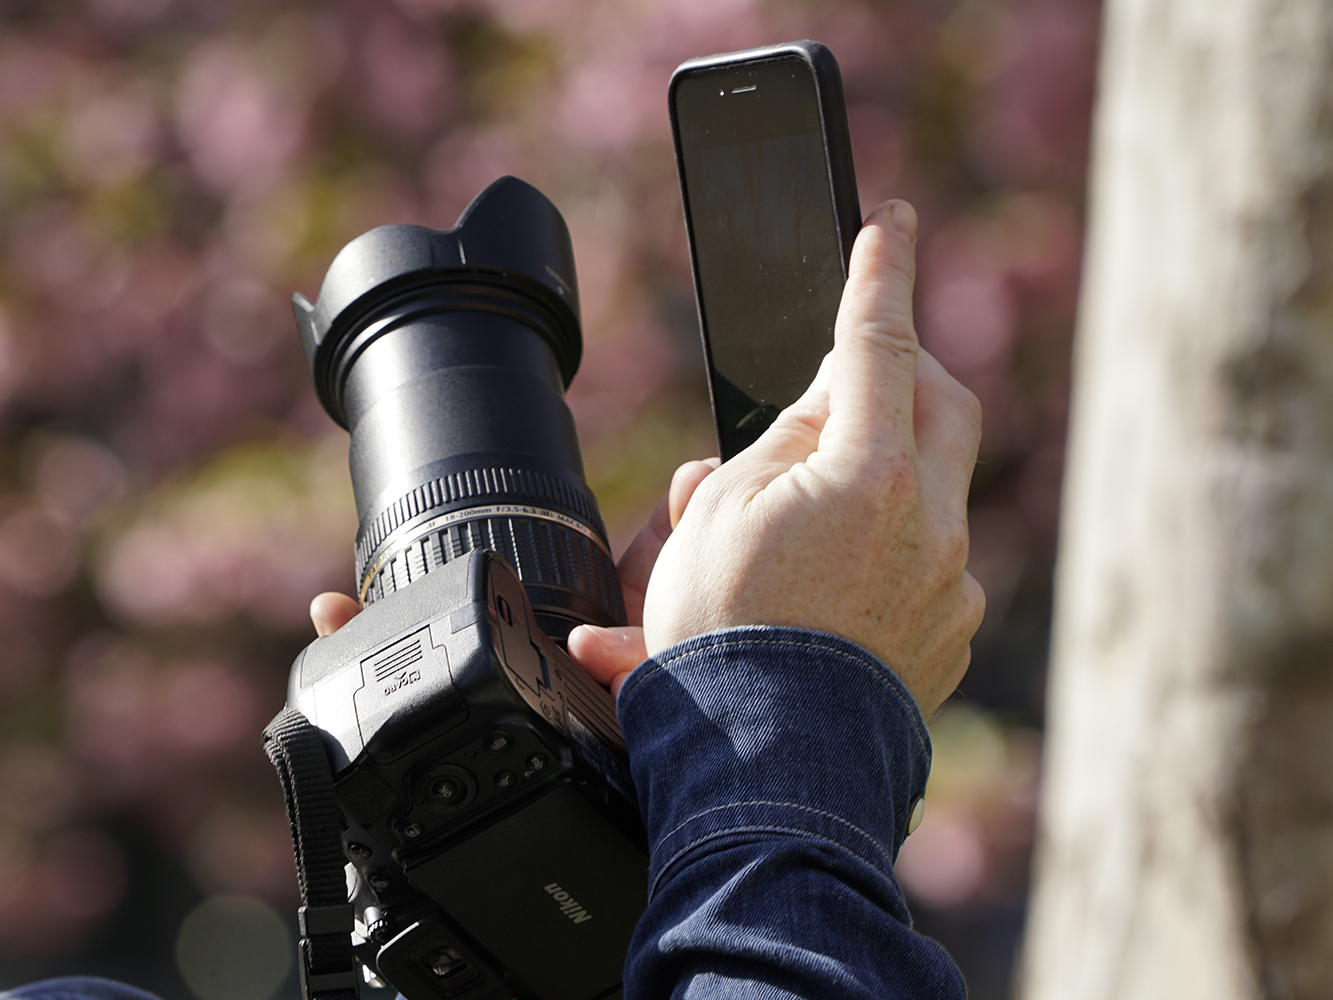 bg-dslr-or-phone.jpg